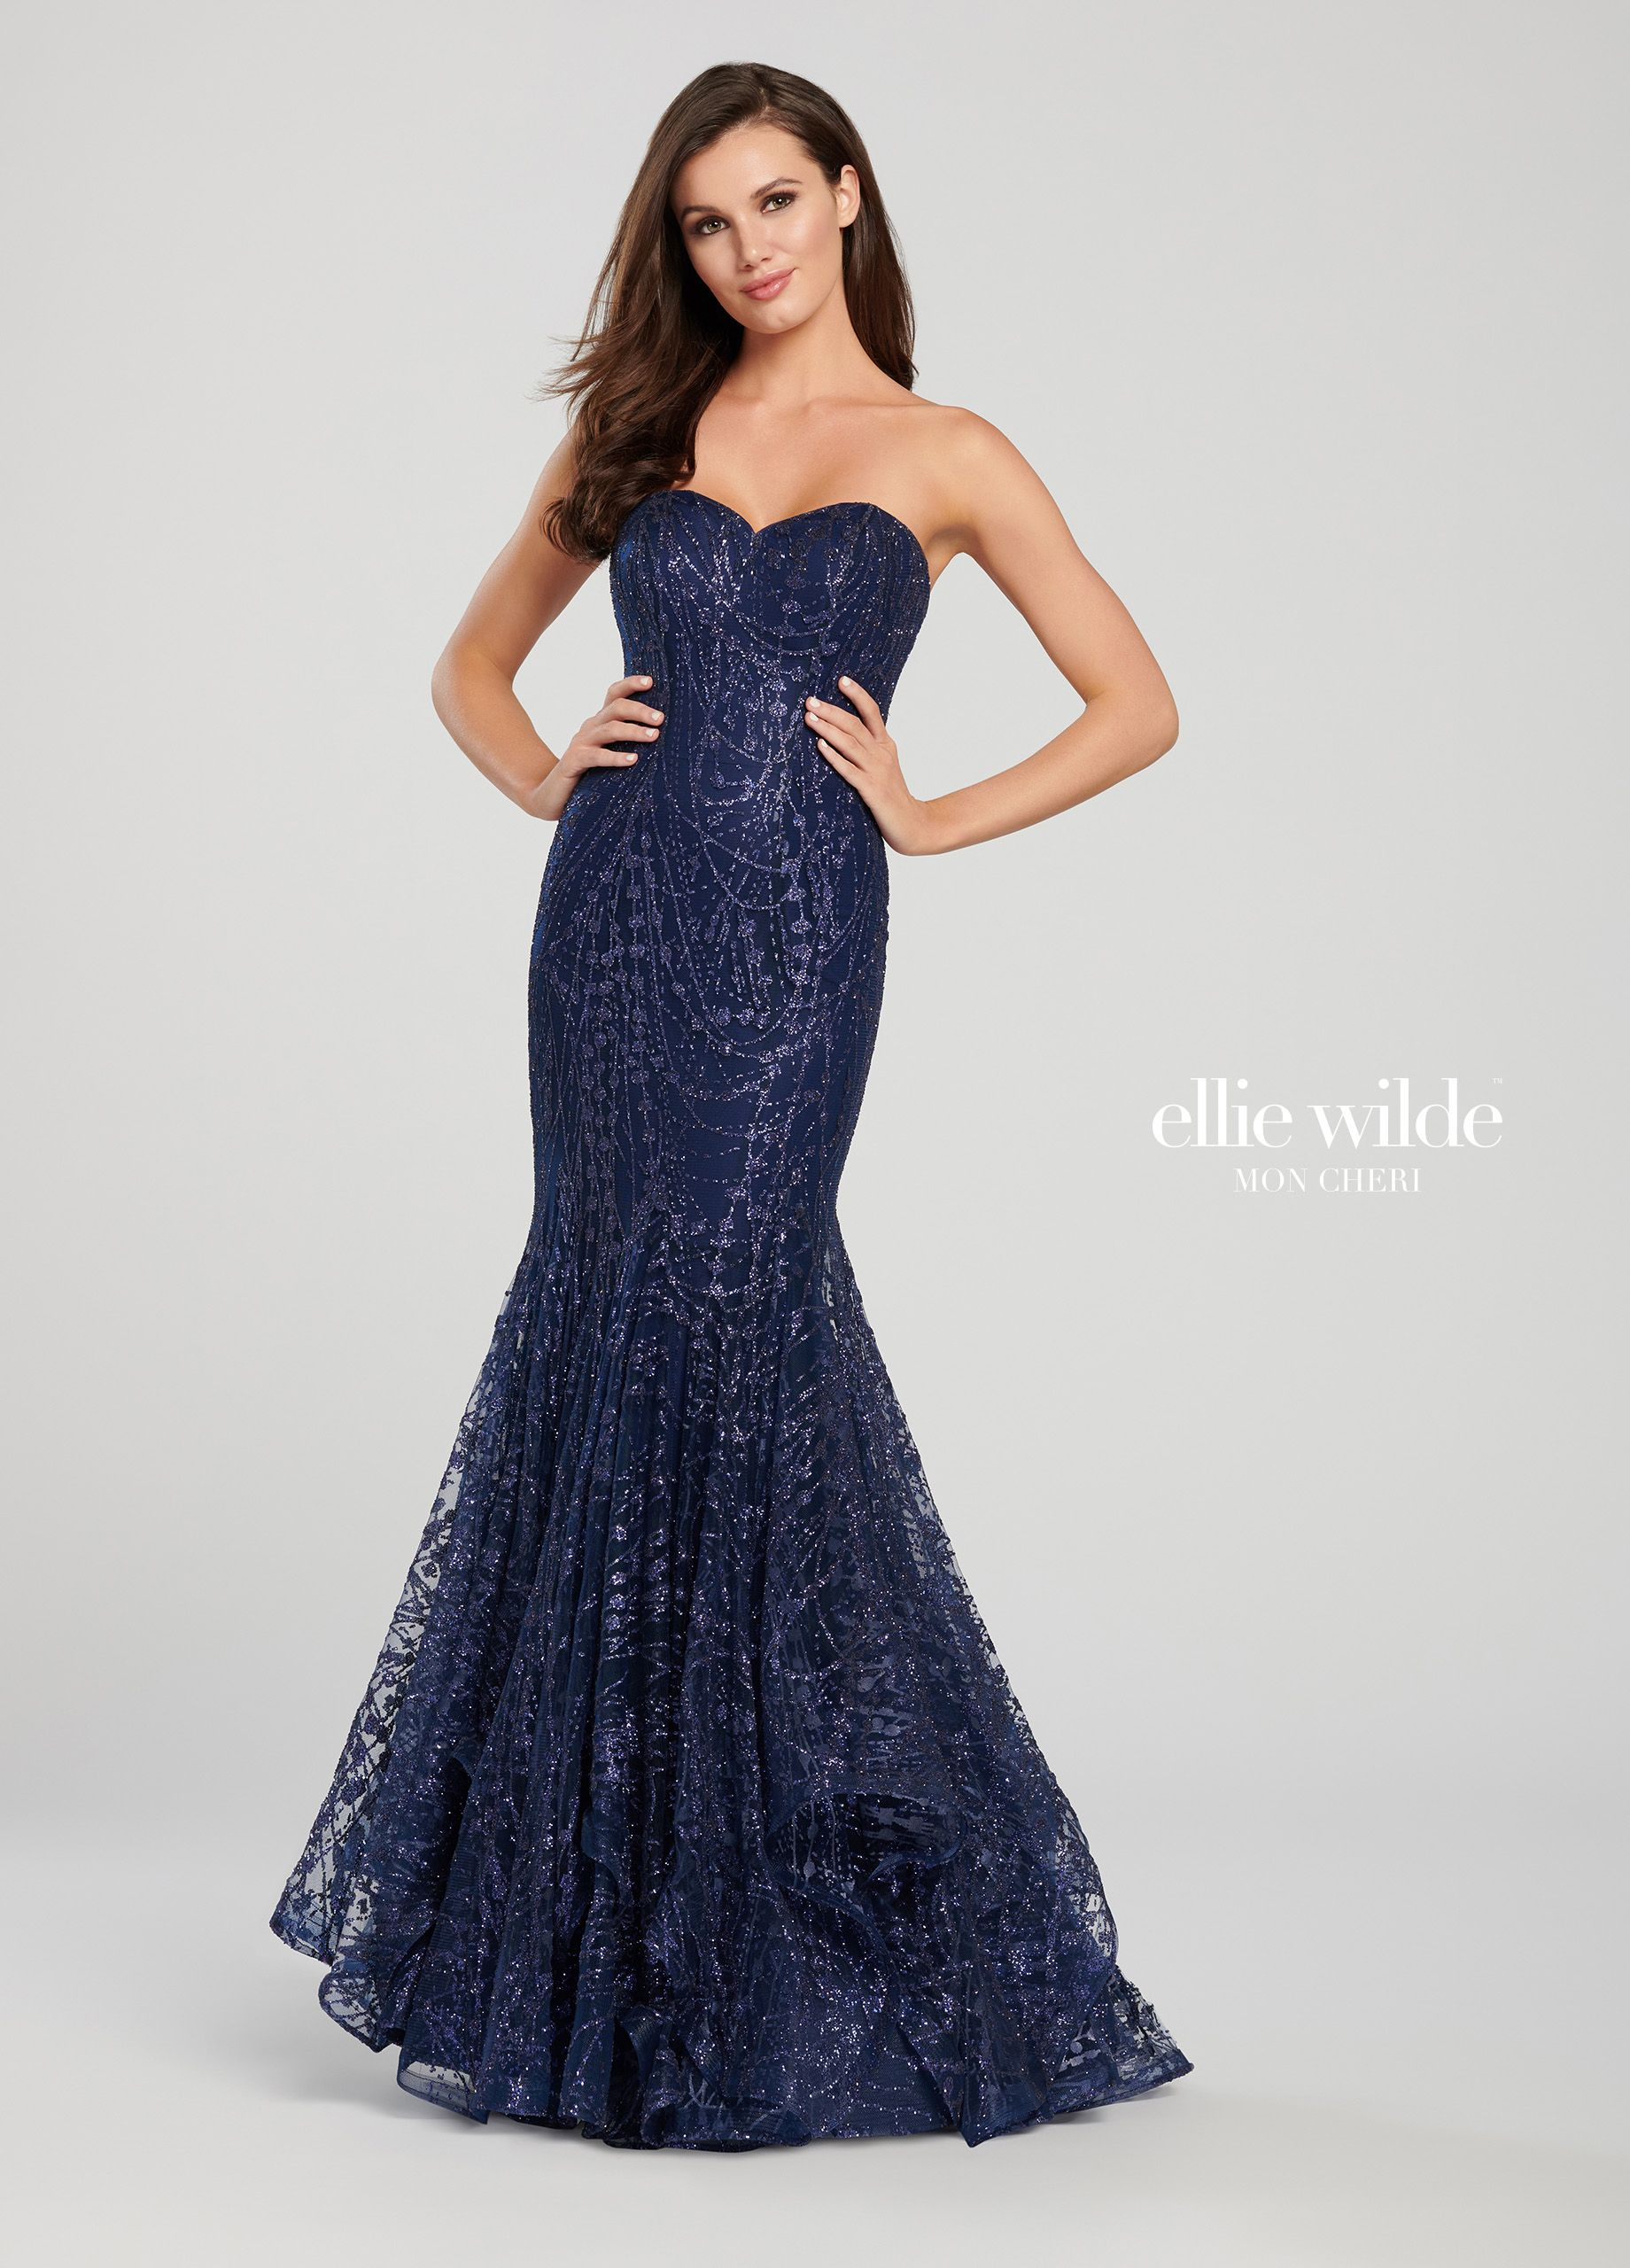 84b1e4af9b9 Ellie Wilde EW118068 - Strapless crack ice tulle trumpet dress with  sweetheart neckline. The glitter of the crack ice tulle flows down the  length of the ...